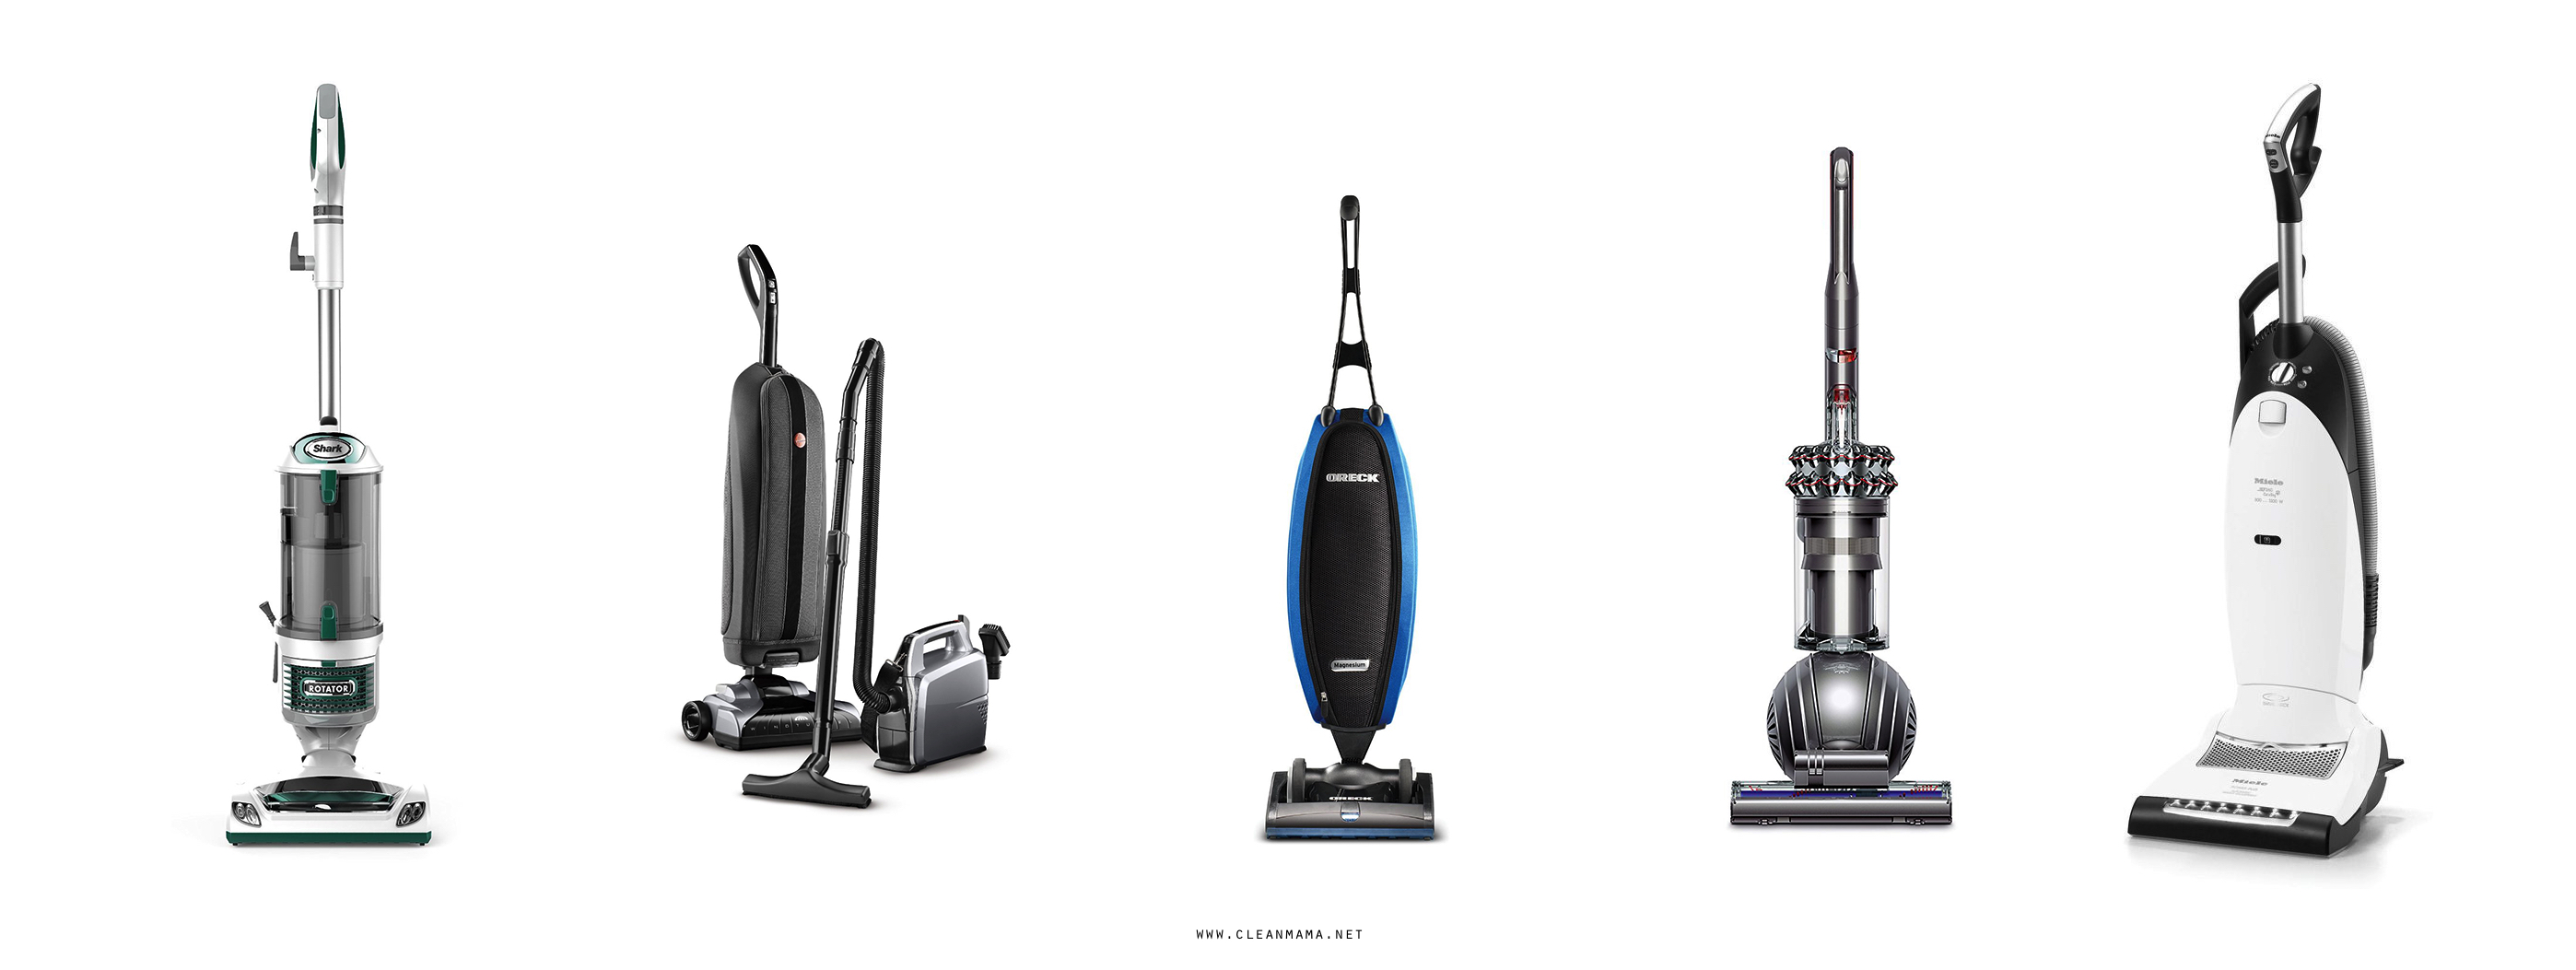 100 best vacuum cleaners 2017 how to choose a vacuum cleaner clean mama best vacuum - Choosing a vacuum cleaner ...